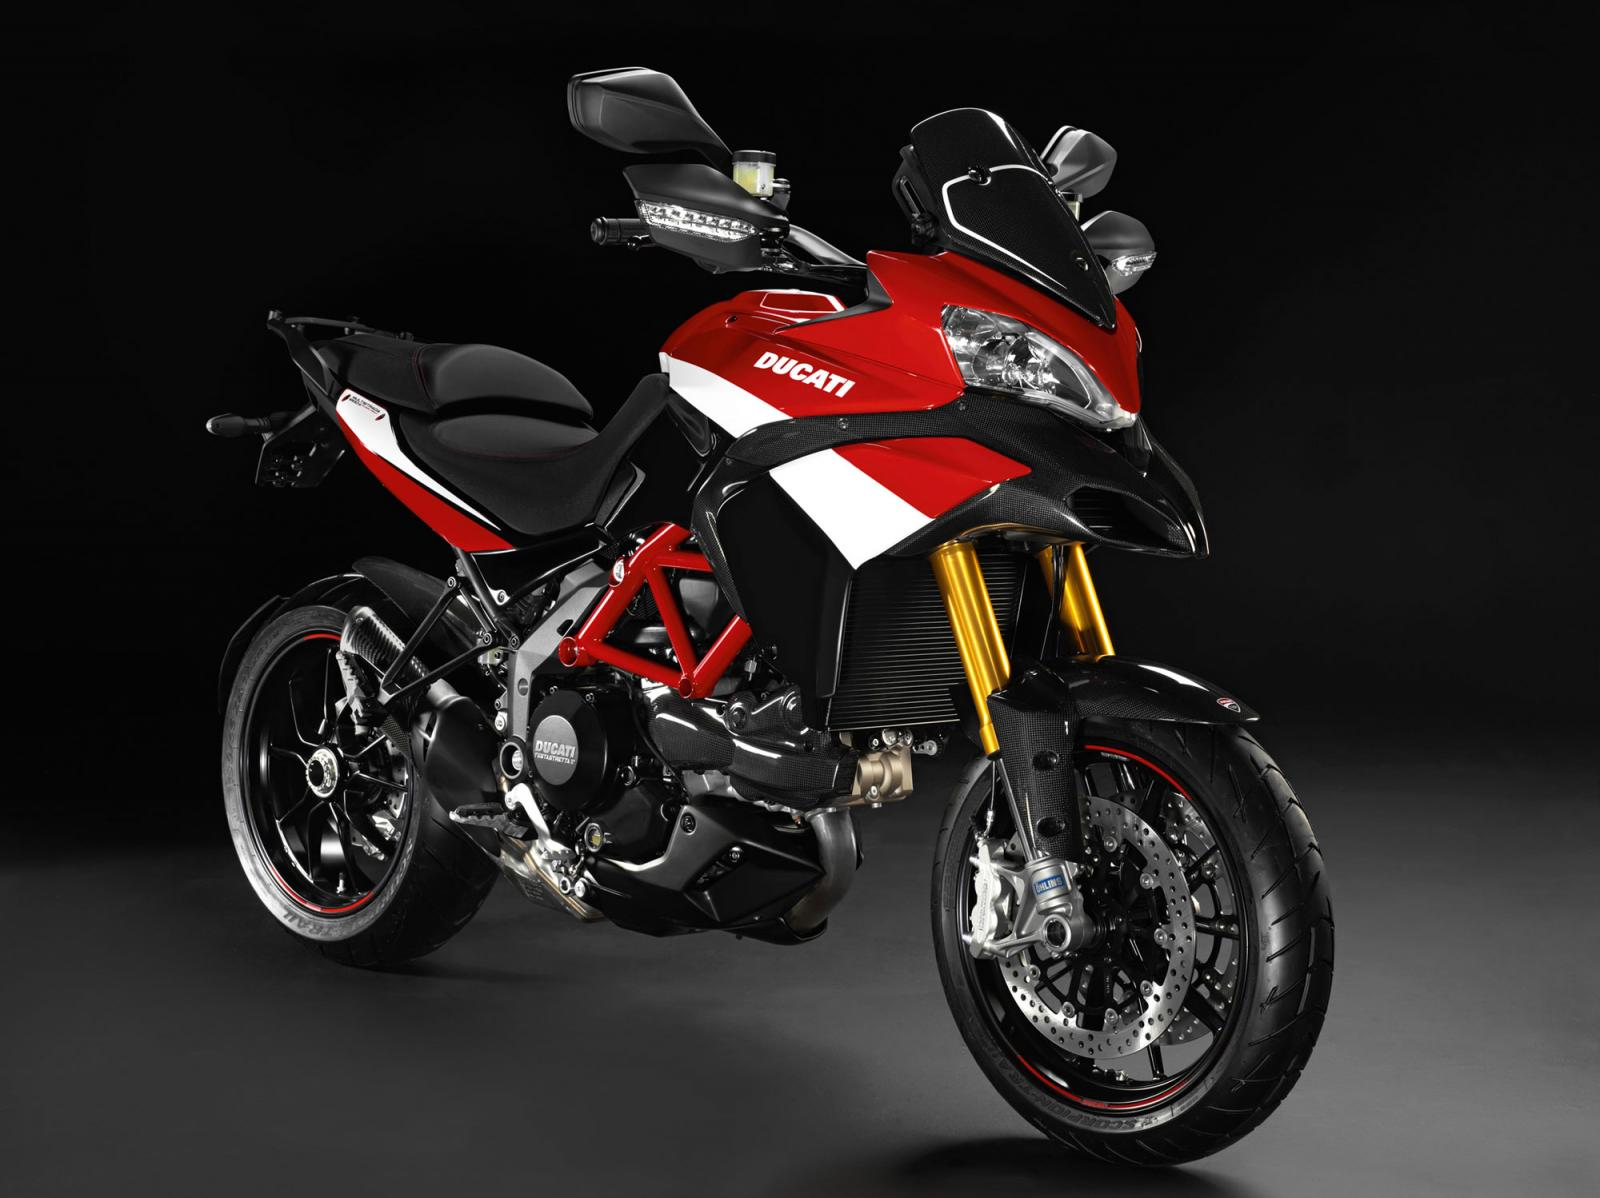 2014 ducati multistrada 1200 s pikes peak moto zombdrive com. Black Bedroom Furniture Sets. Home Design Ideas